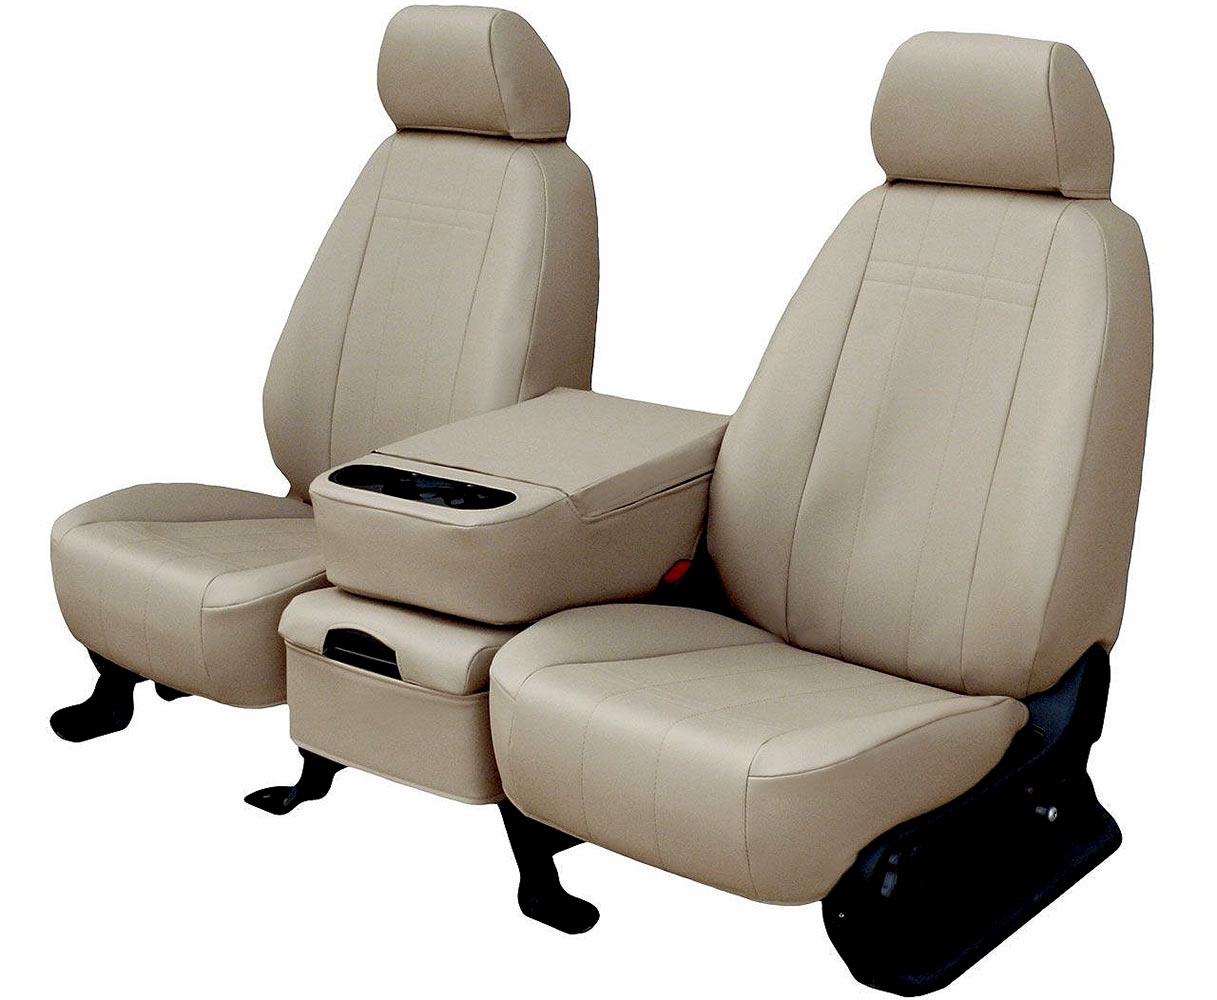 2009 chevy silverado extended cab seat covers